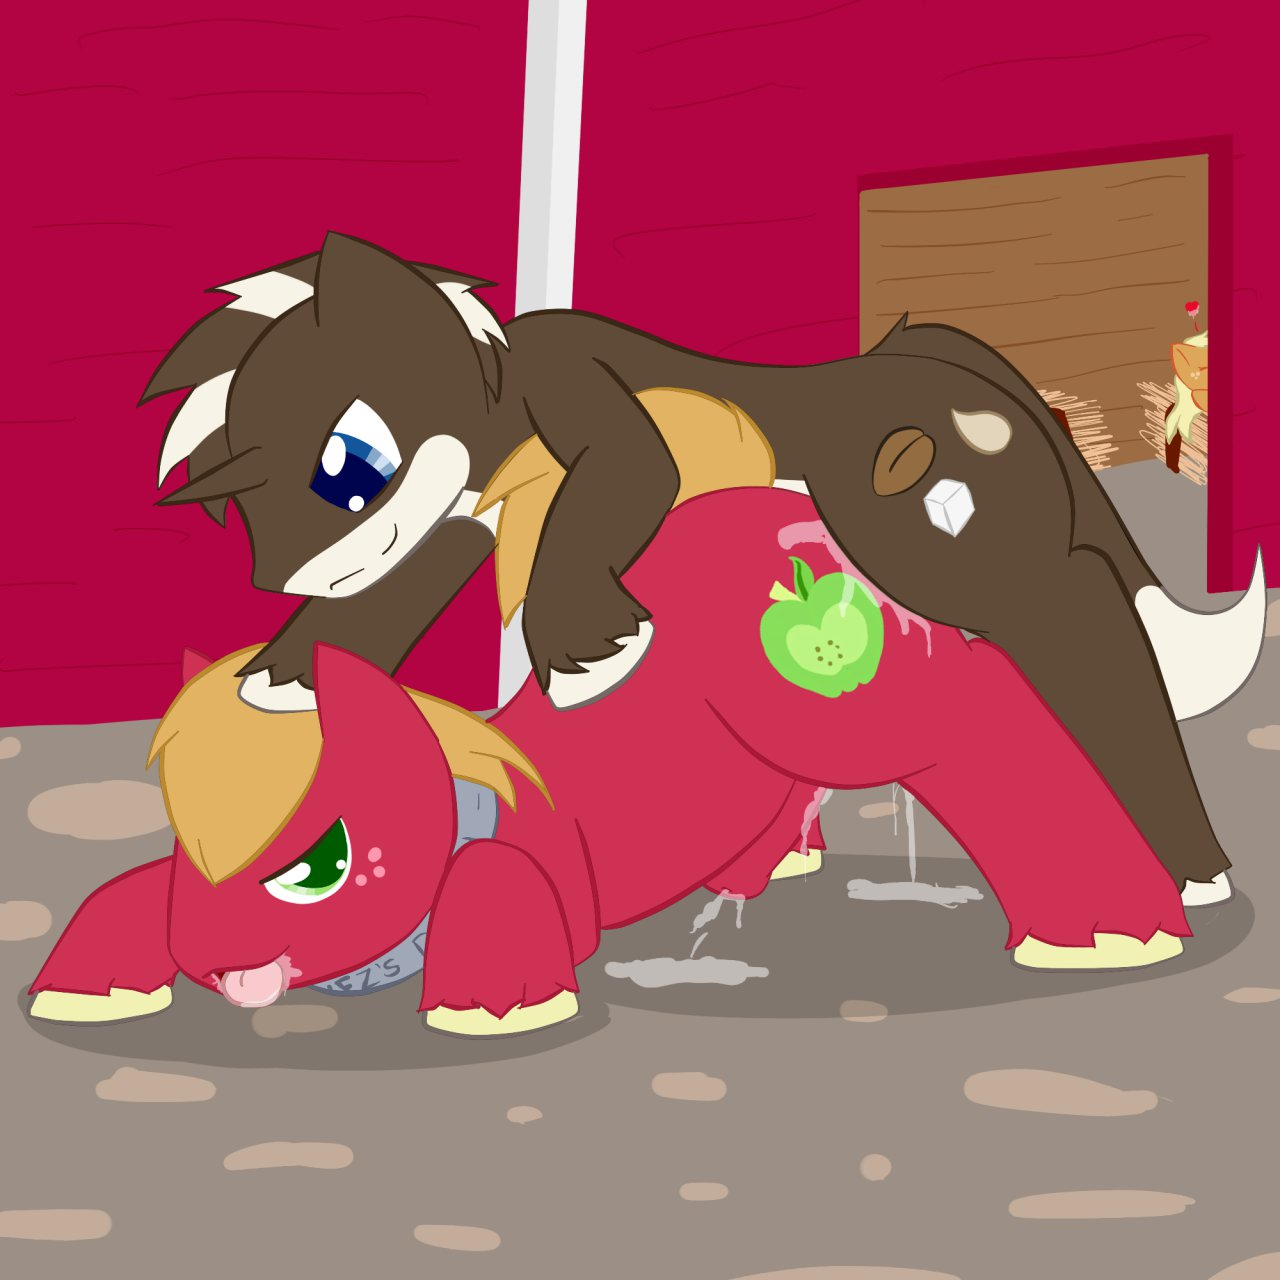 pictures my pony applejack of little from Spiderman the new animated series mary jane